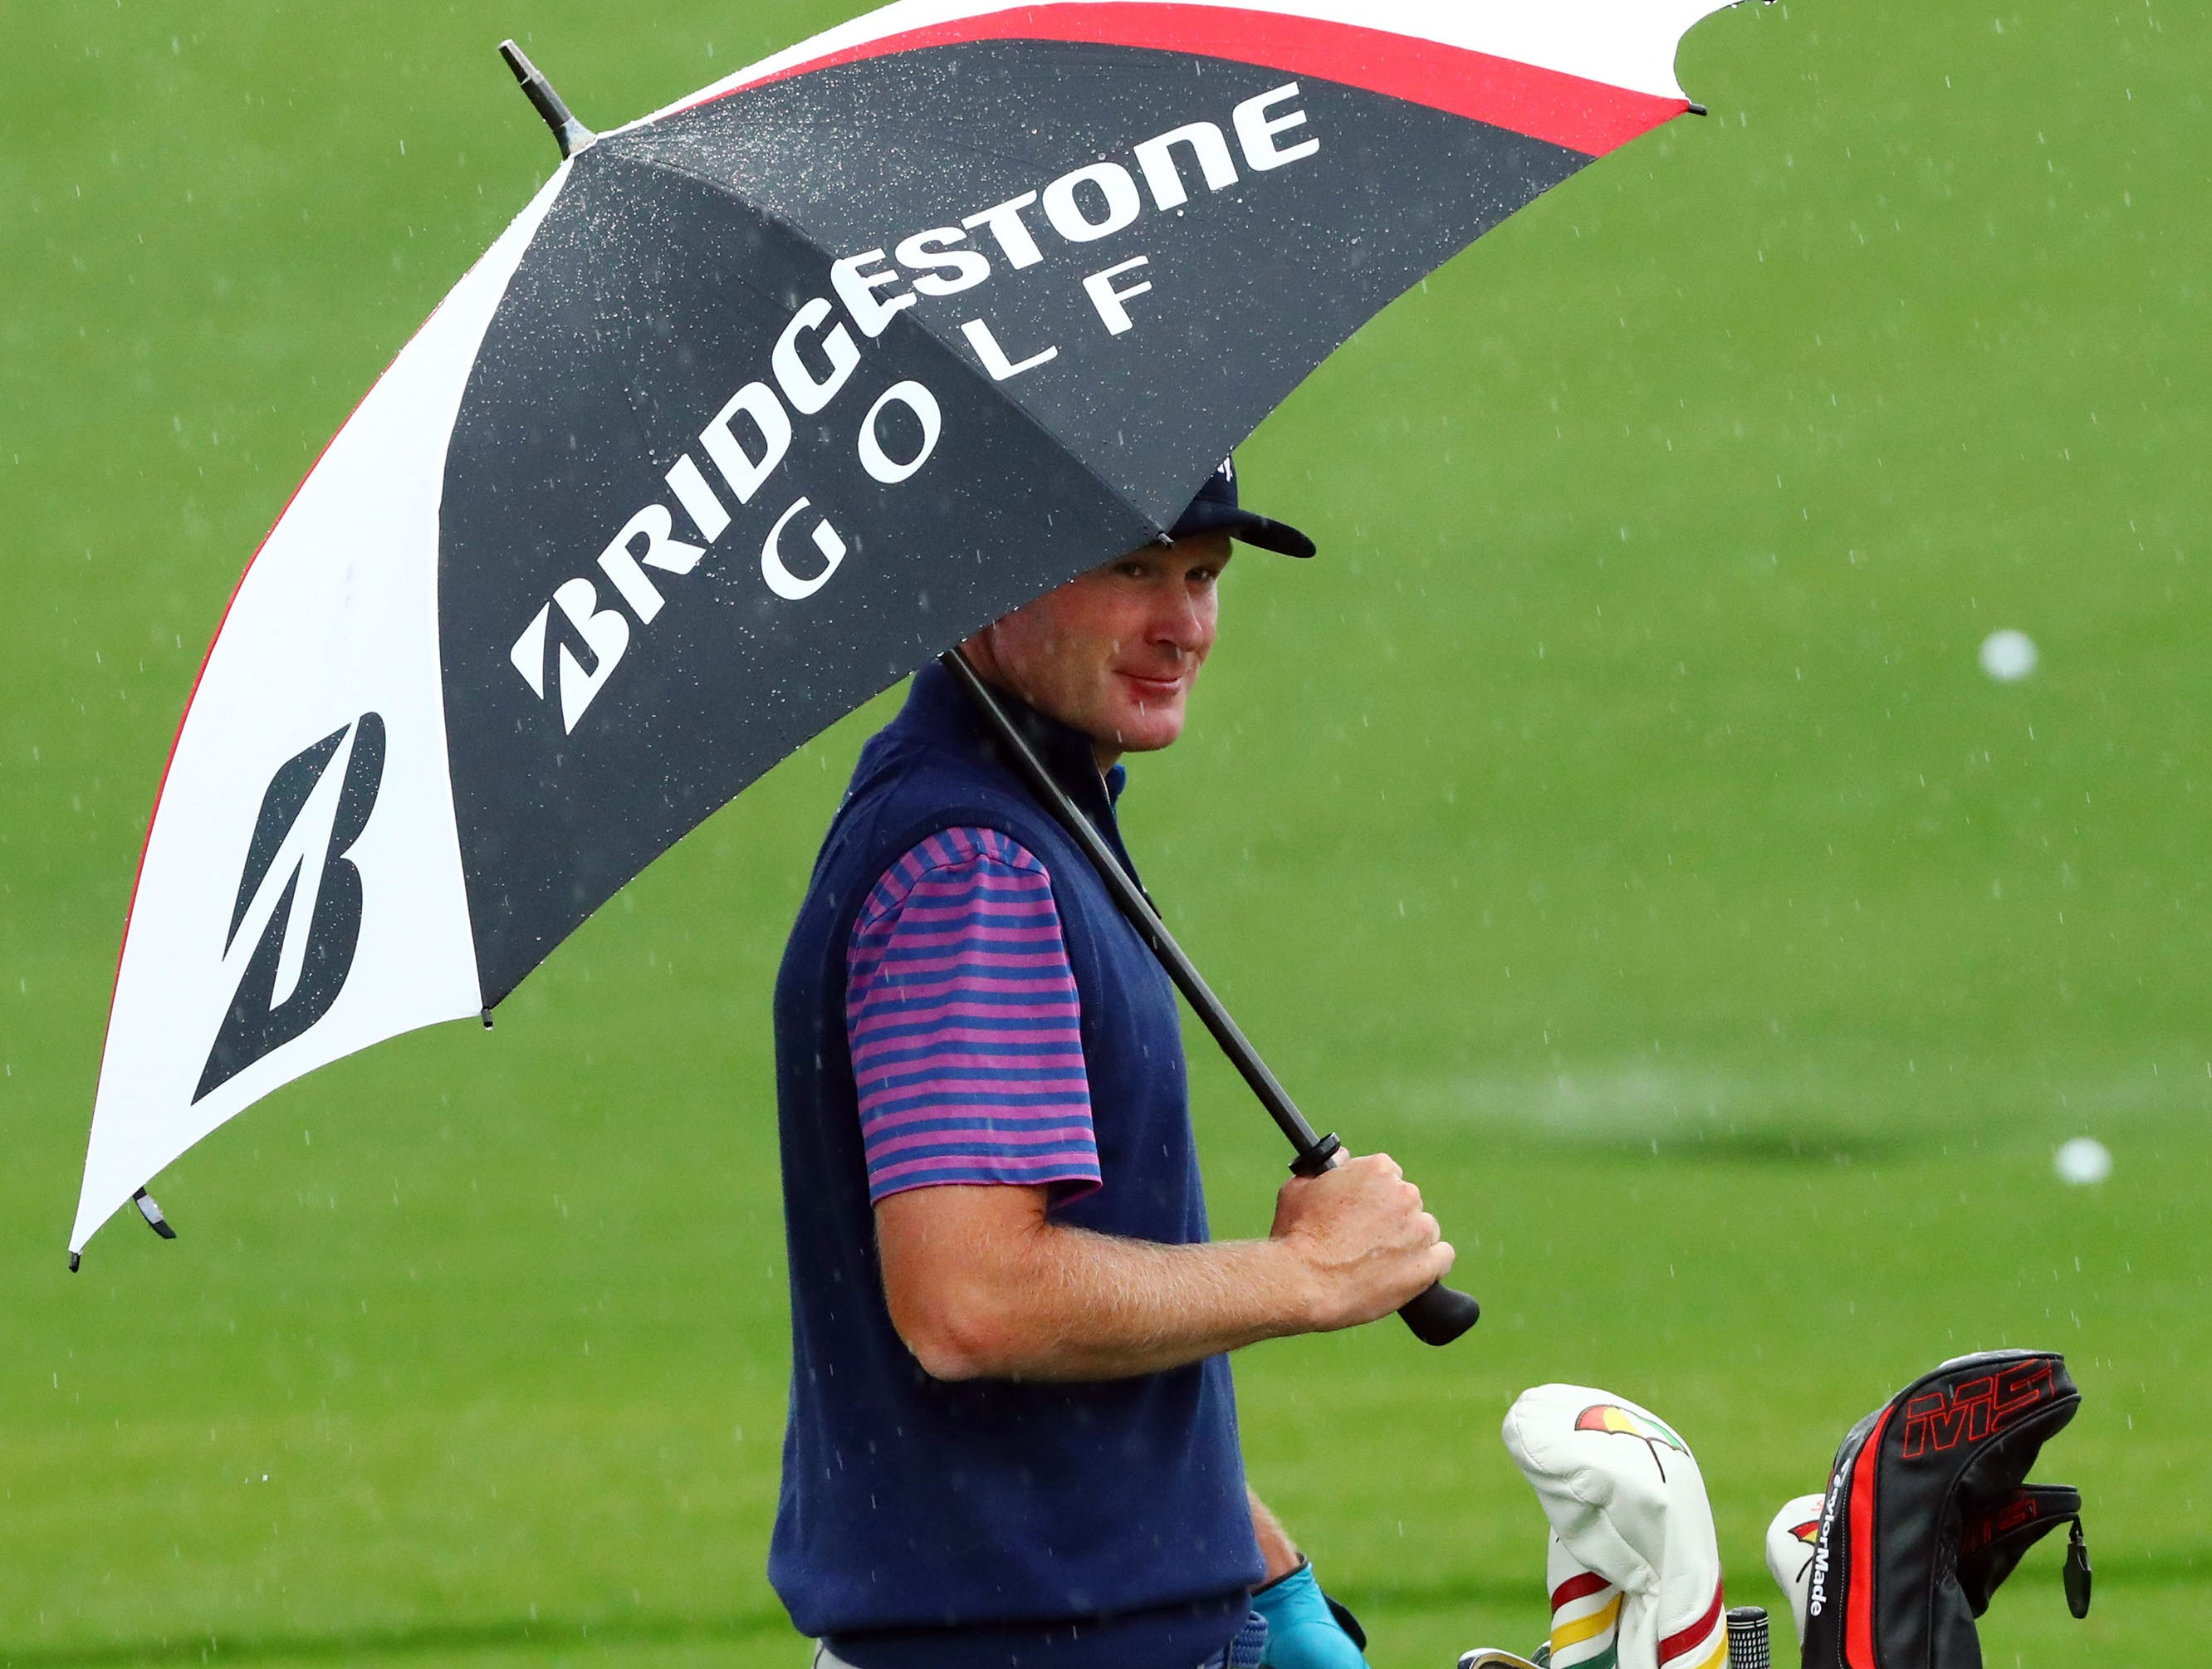 Apr 9, 2019; Augusta, GA, USA; Brandt Snedeker protects himself from the rain at the practice facility during a practice round for The Masters golf tournament at Augusta National Golf Club. Mandatory Credit: Rob Schumacher-USA TODAY Sports